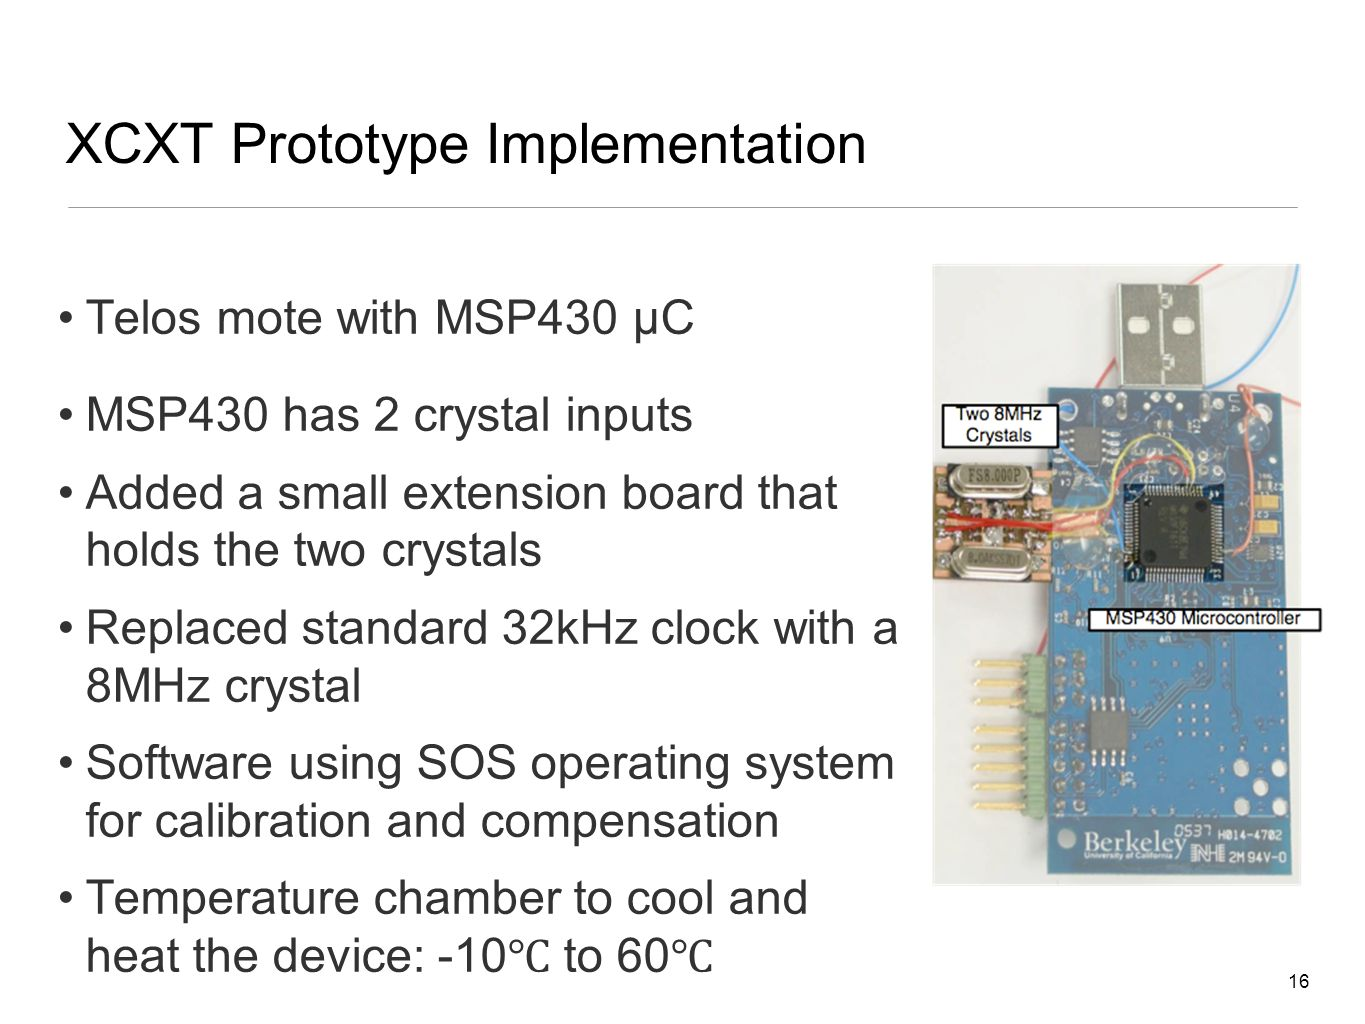 16 XCXT Prototype Implementation Telos mote with MSP430 µC MSP430 has 2 crystal inputs Added a small extension board that holds the two crystals Replaced standard 32kHz clock with a 8MHz crystal Software using SOS operating system for calibration and compensation Temperature chamber to cool and heat the device: -10 ℃ to 60 ℃